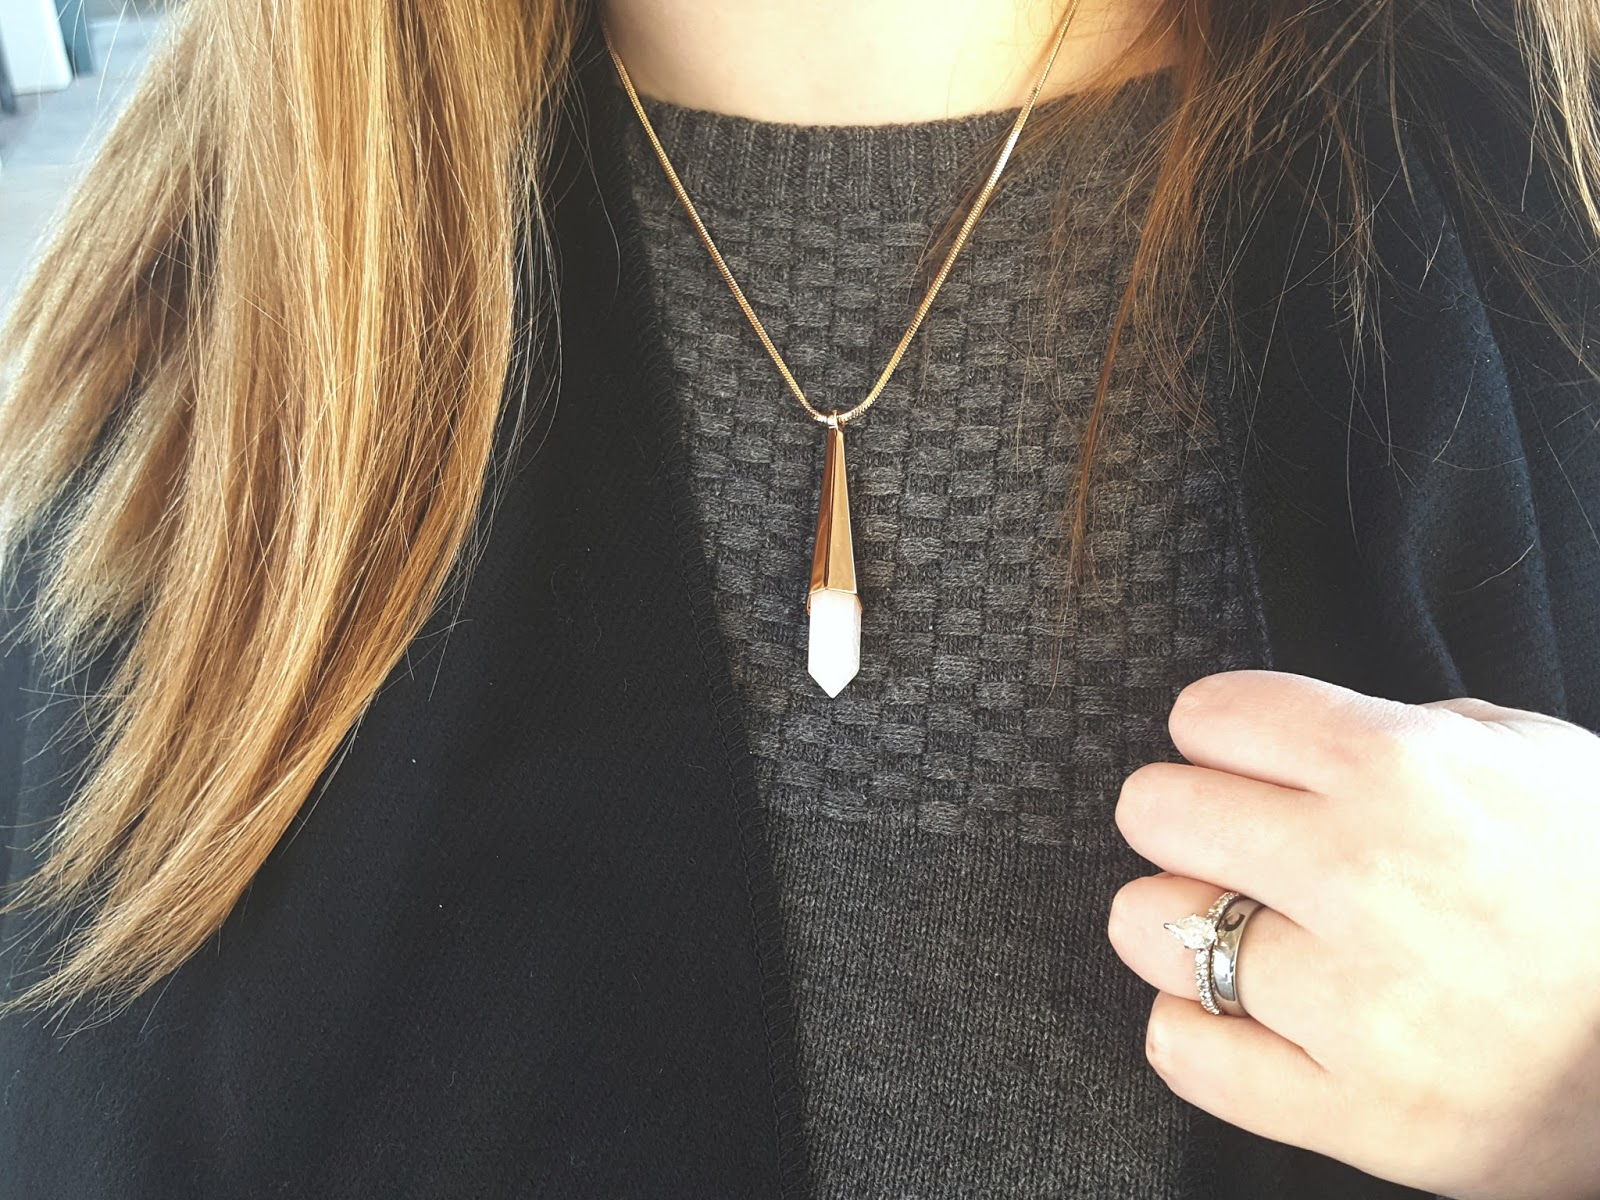 outfit-of-the-day, ootd, vince-camuto-rose-gold-crystal-pendant, jared-engagement-ring, grey-talbots-sweater